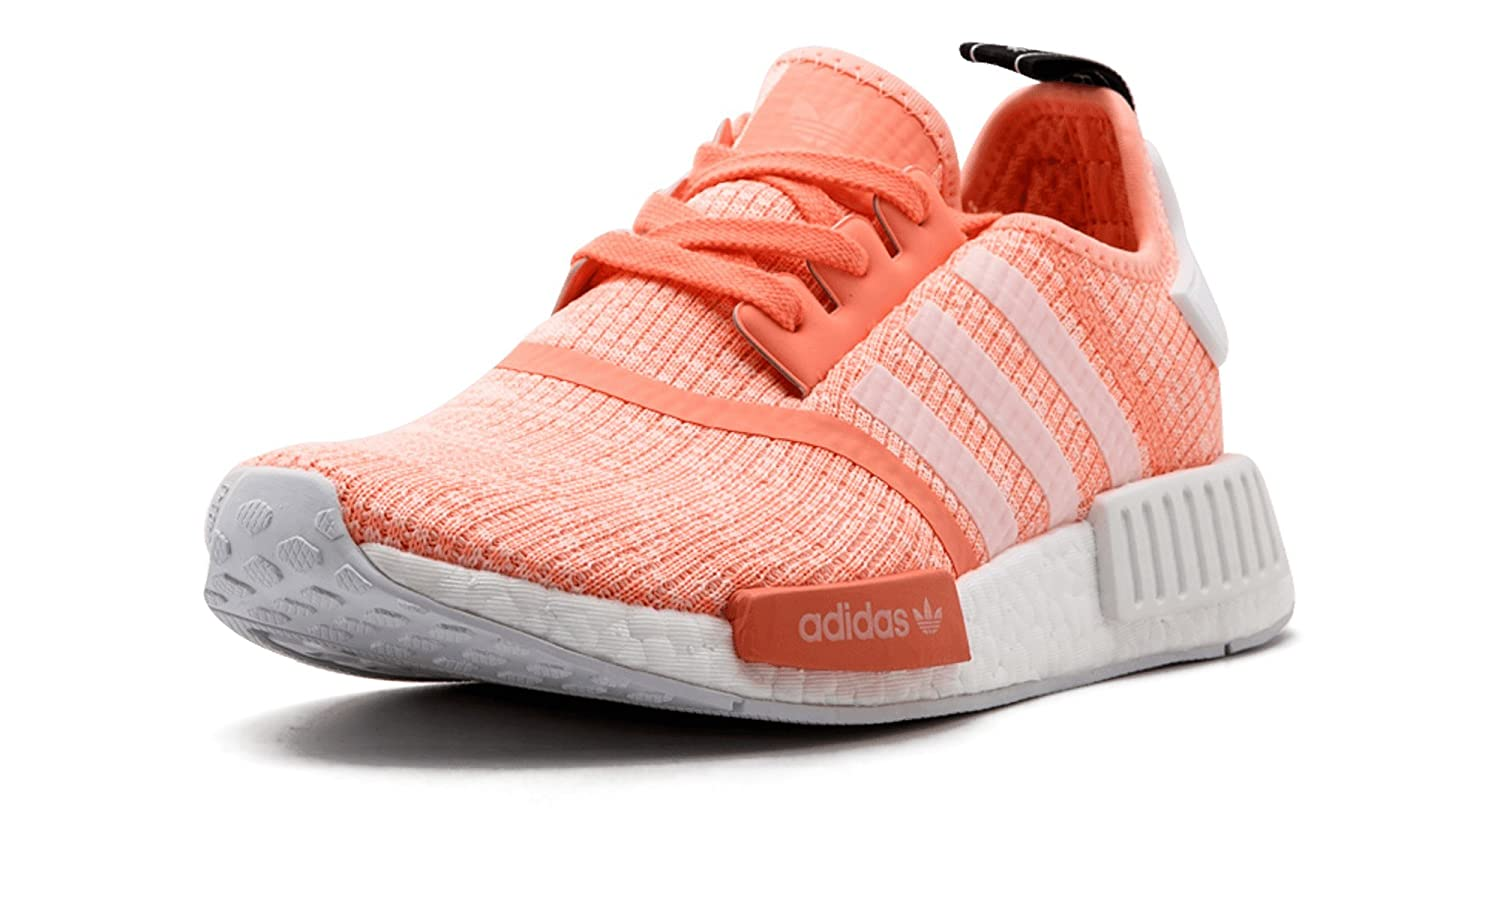 adidas NMD R1 NMD W 19295 PK B07HNXT1DK 363, Baskets Mixte Adulte Orange adab186 - reprogrammed.space